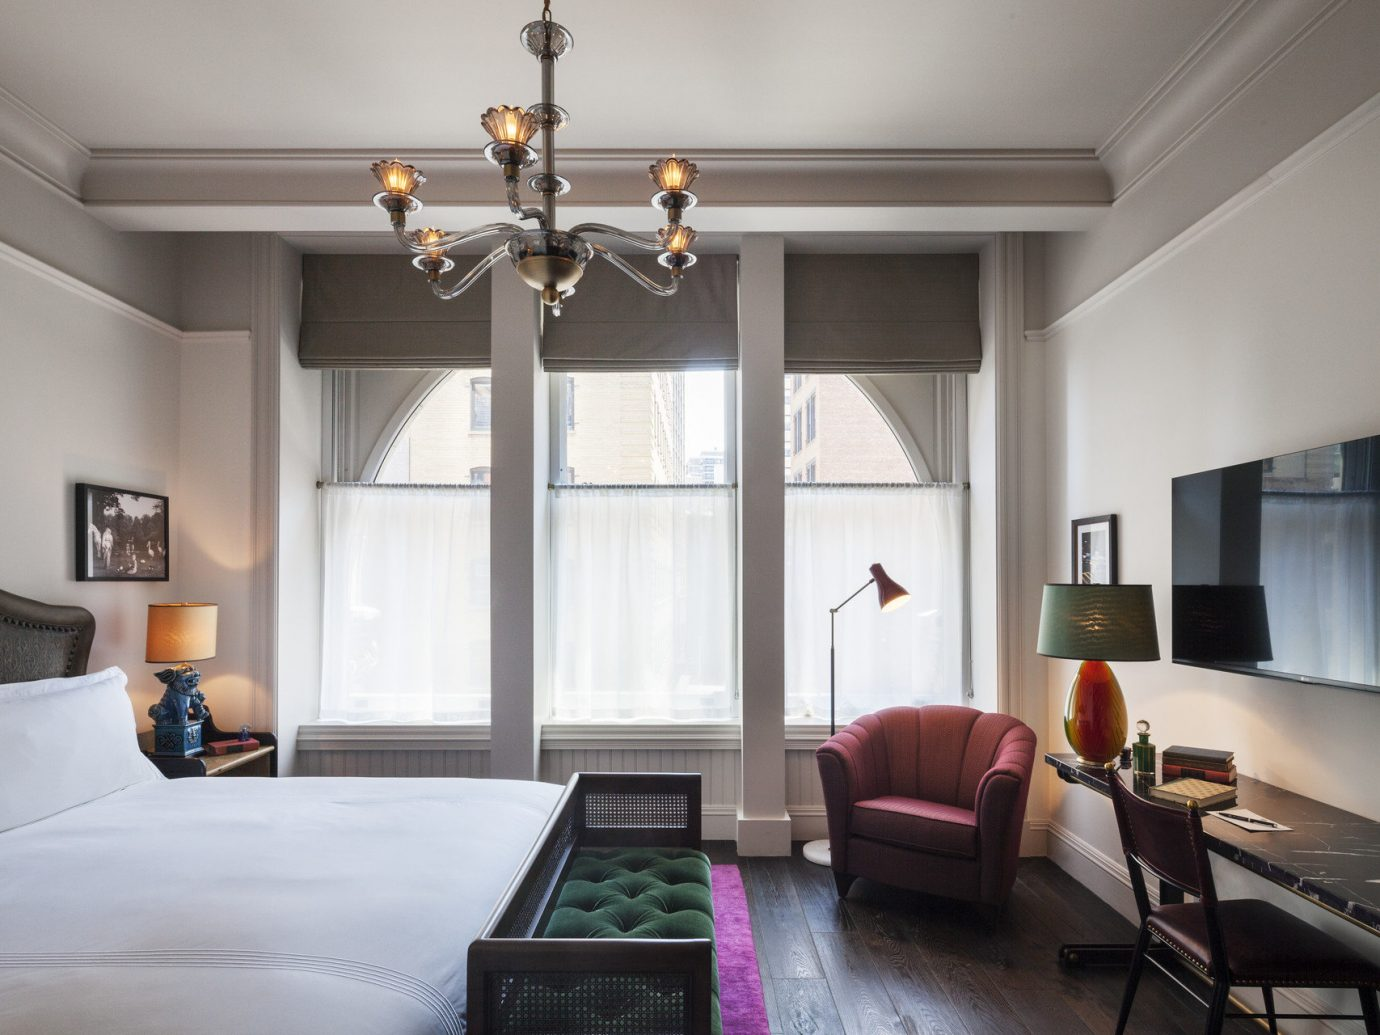 Hotels NYC indoor wall room floor Living property window living room interior design home Bedroom ceiling real estate estate Design furniture daylighting window covering area decorated